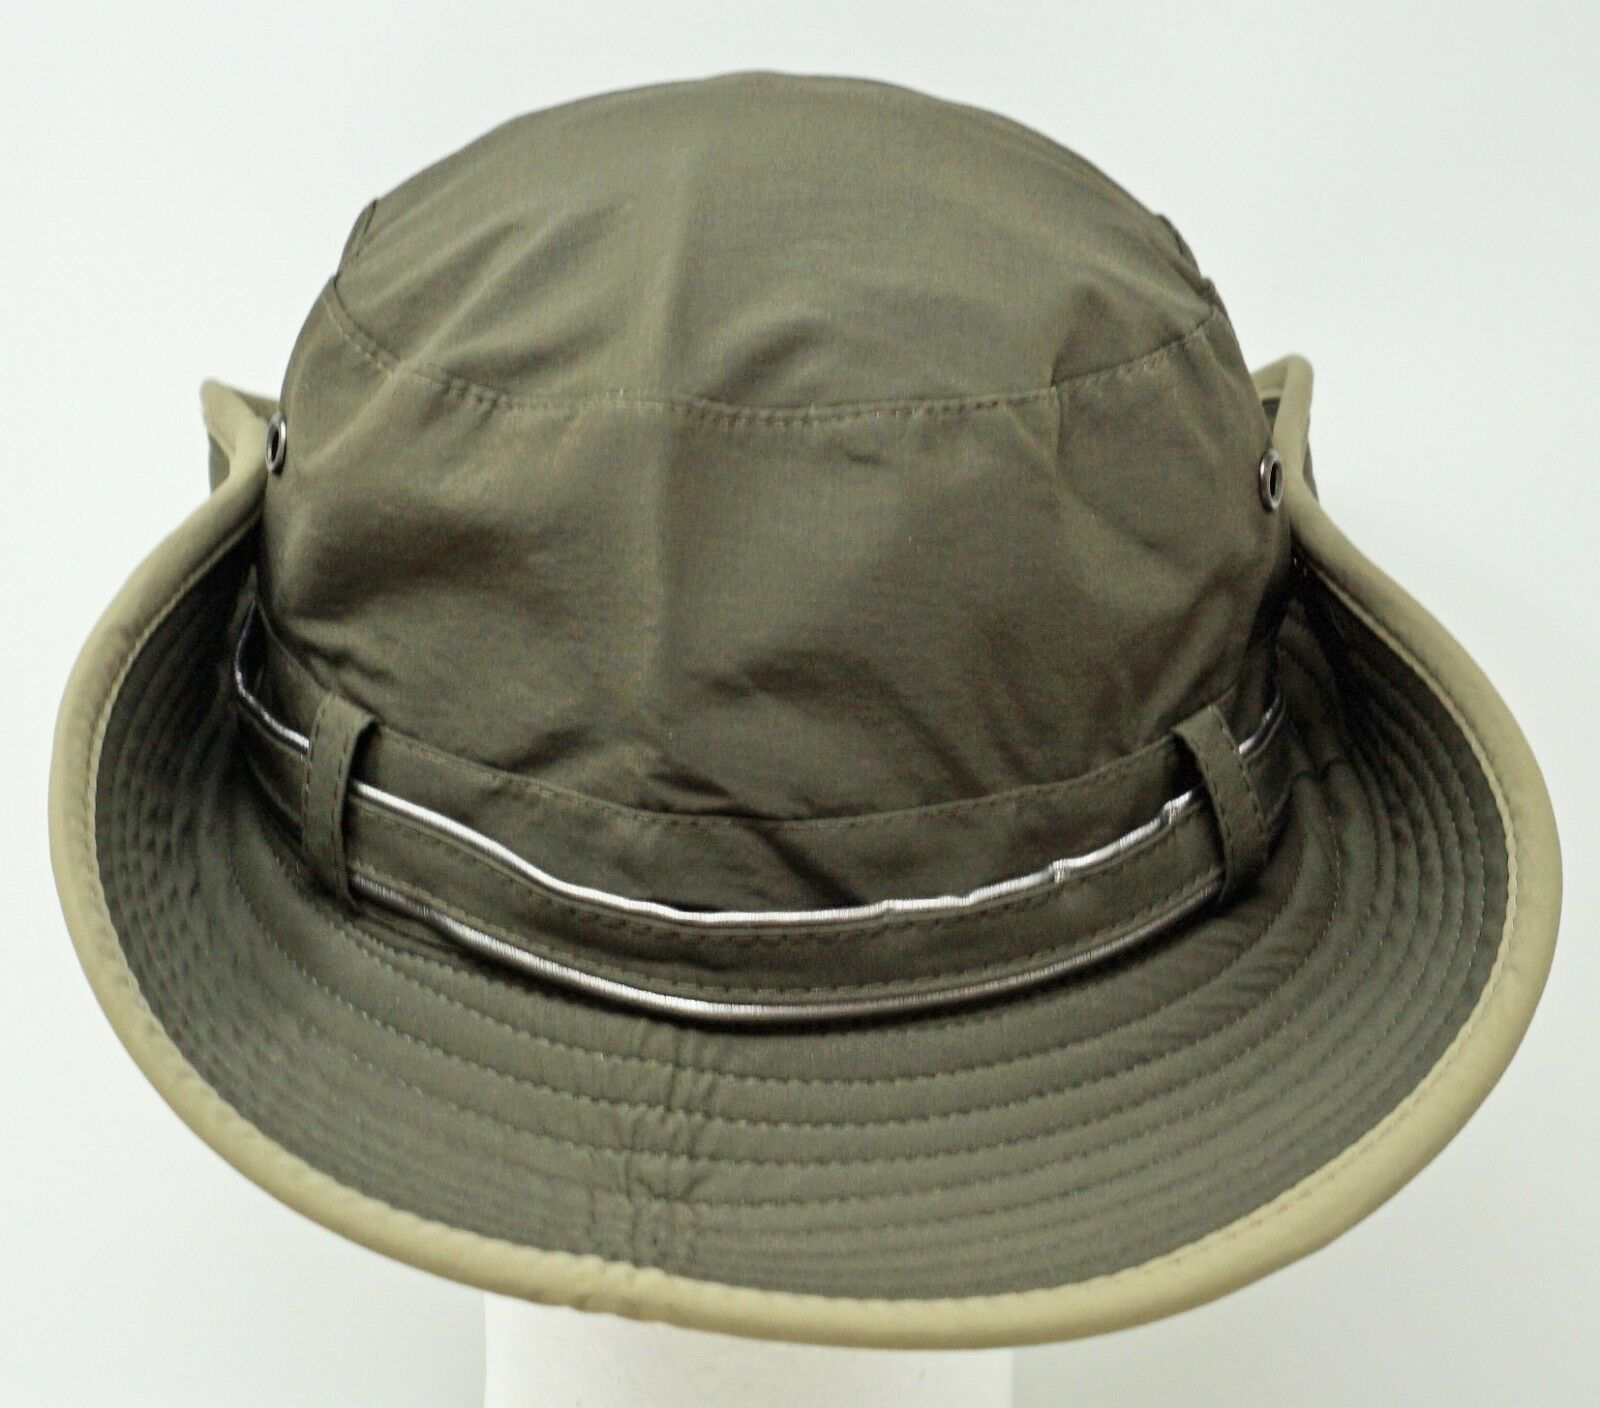 Summer Outdoor Boonie Bush Hat Fishing Hunting New Camping Cap Adult OSFM New Hunting 8c7427